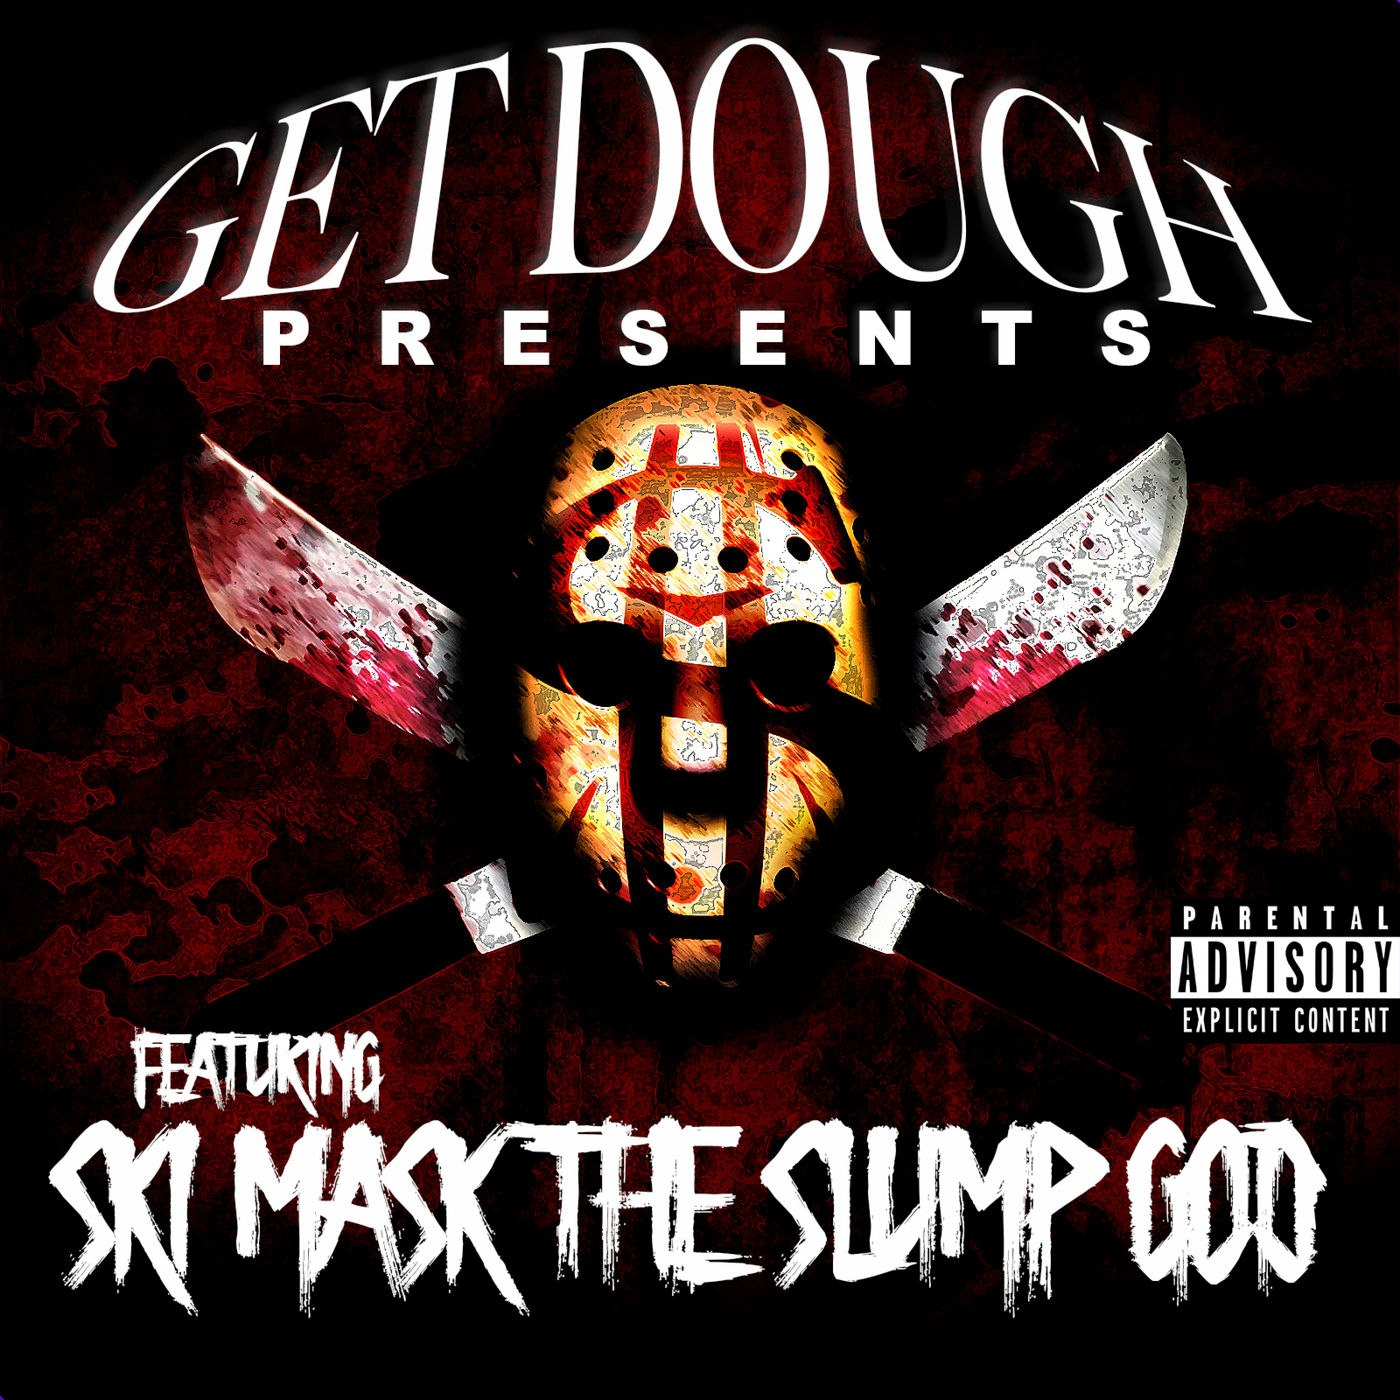 Ski Mask «The Slump God» – Get Dough Presents